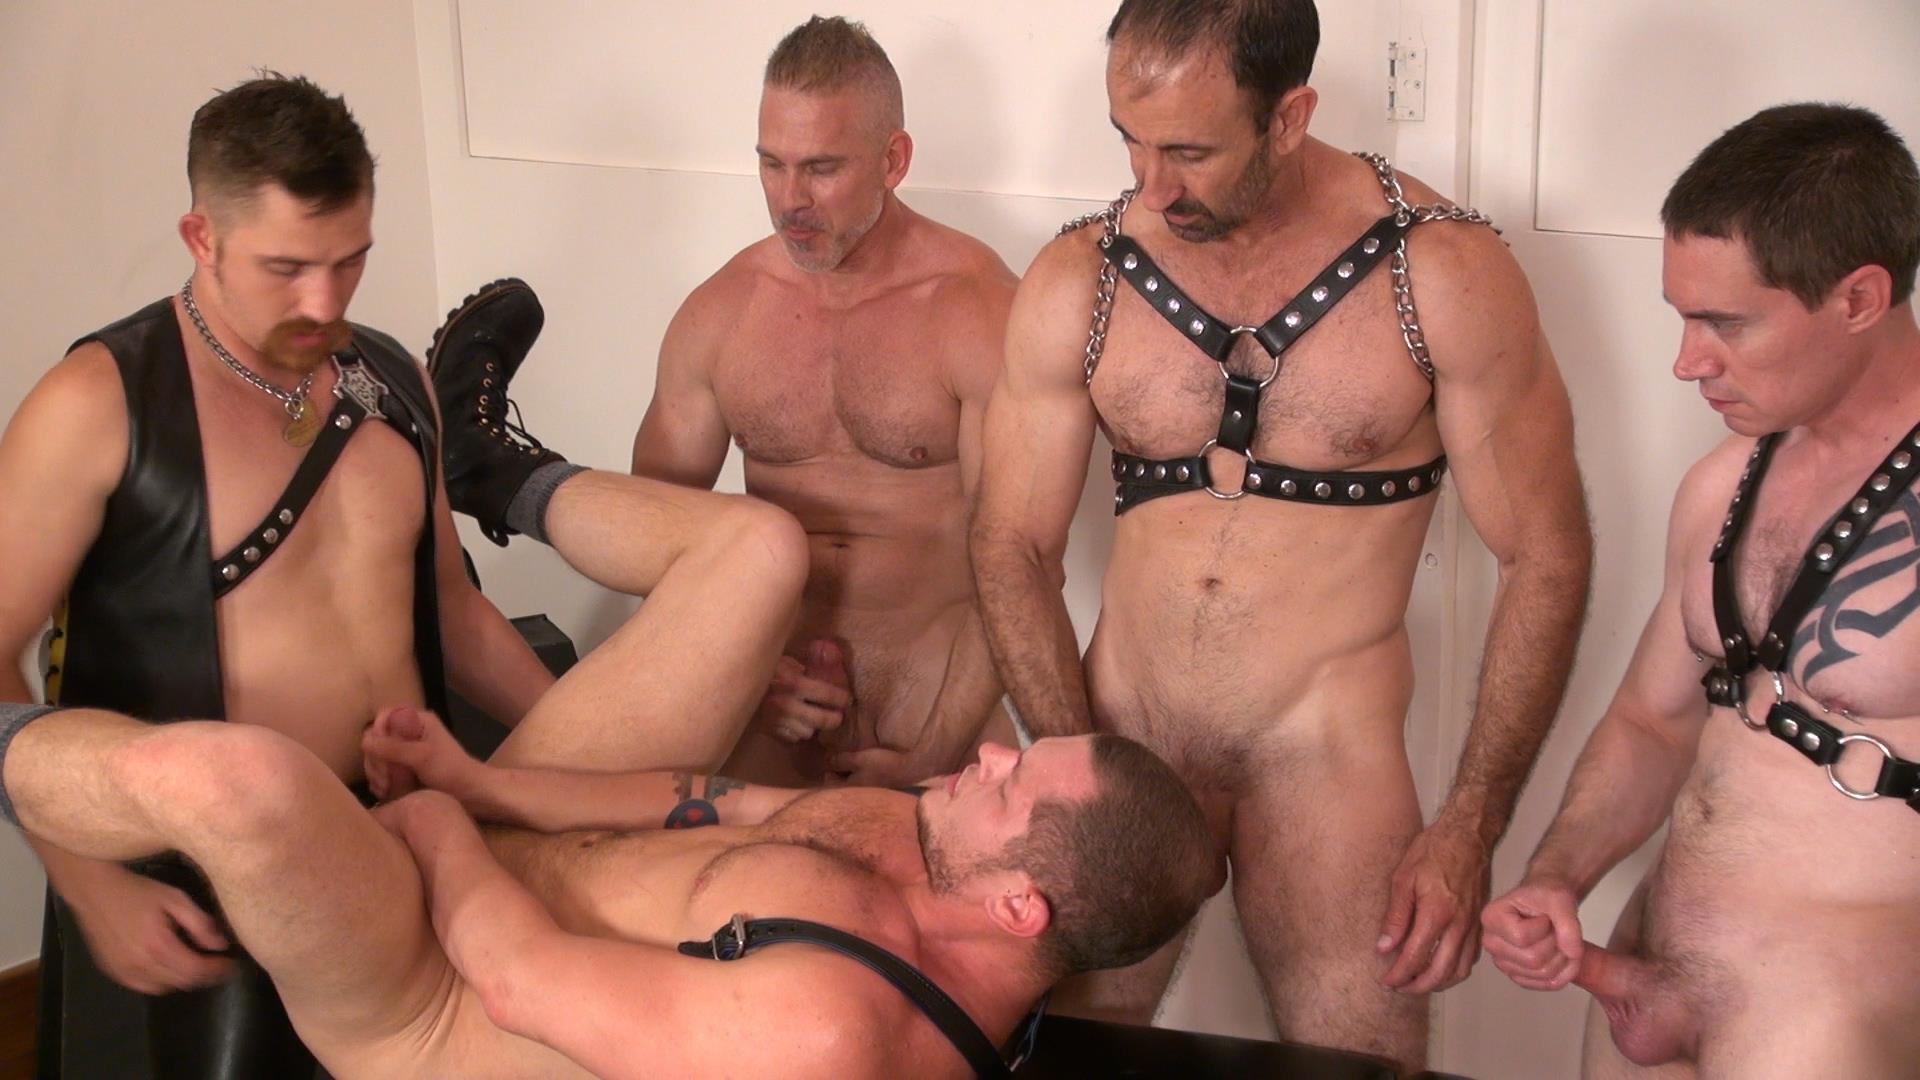 Raw and Rough Jason Mitchell Steven Richards Sam Dixon Blue Bailey Dayton OConnor Jose del Toro Bareback Bathhouse Amateur Gay Porn 10 Blue Bailey Getting Fucked Bareback By 5 Guys At A Bathhouse